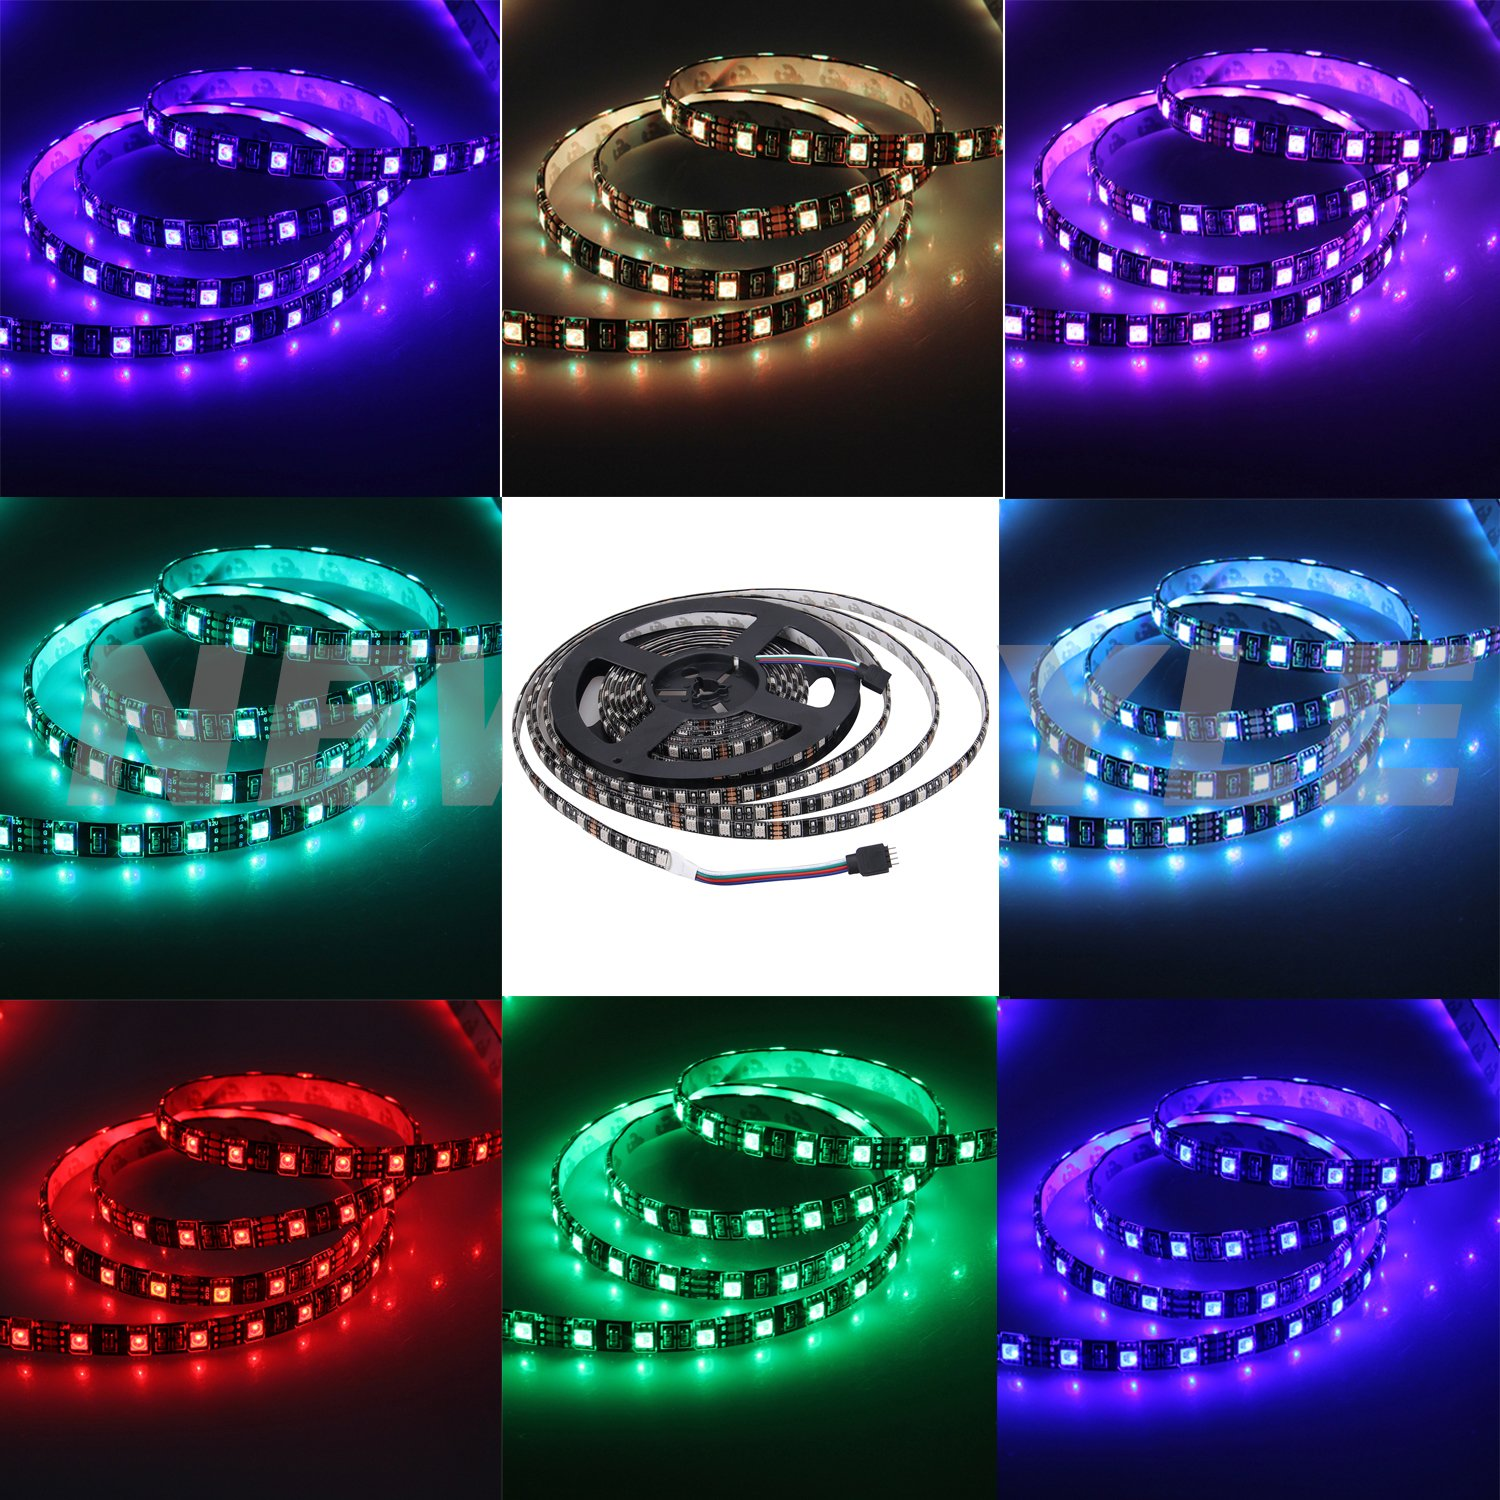 NEWSTYLE Black PCB Celebration LED Strip Lighting 16.4ft 5M Waterproof Rope Lights 300 LEDs 5050 SMD RGB Multicolored